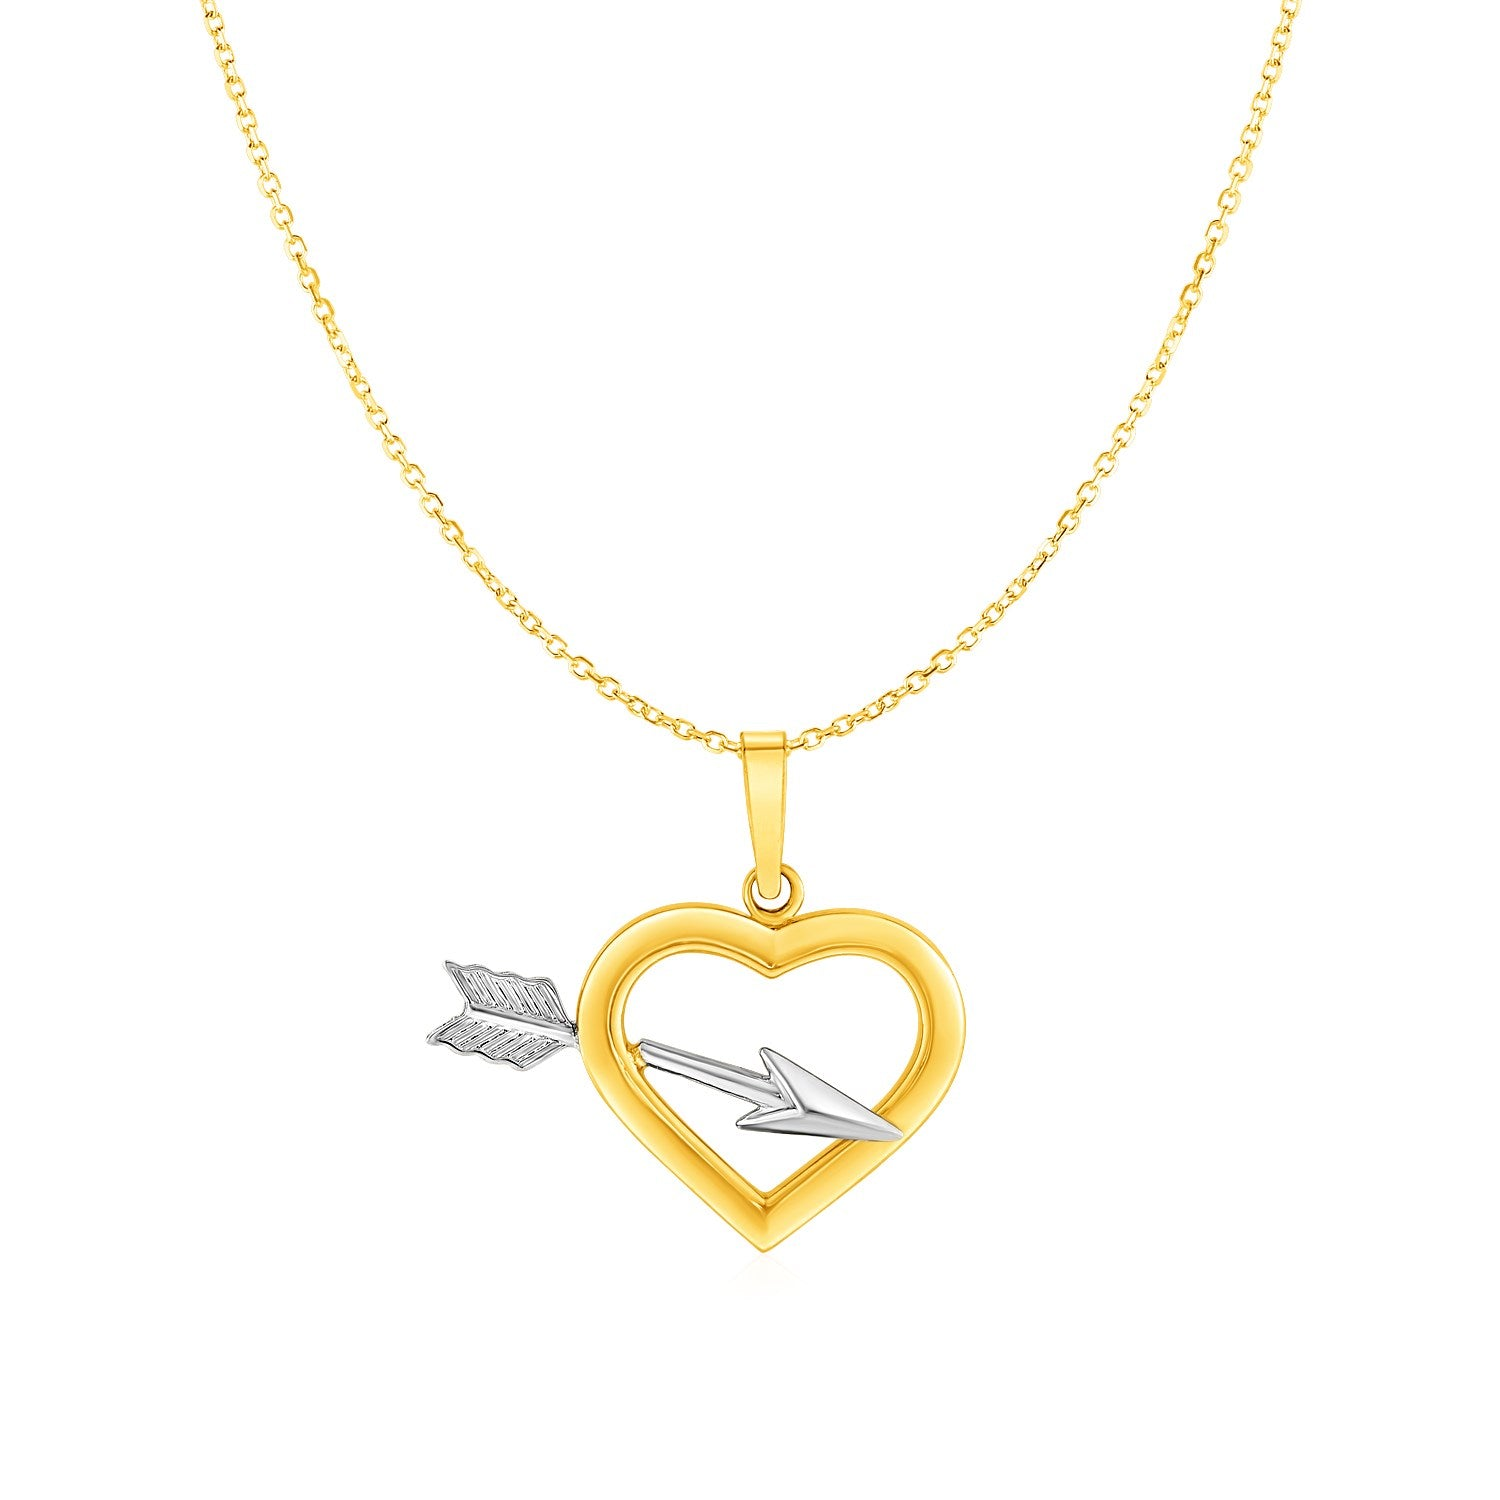 Heart and Arrow Pendant in 10K Two tone Gold